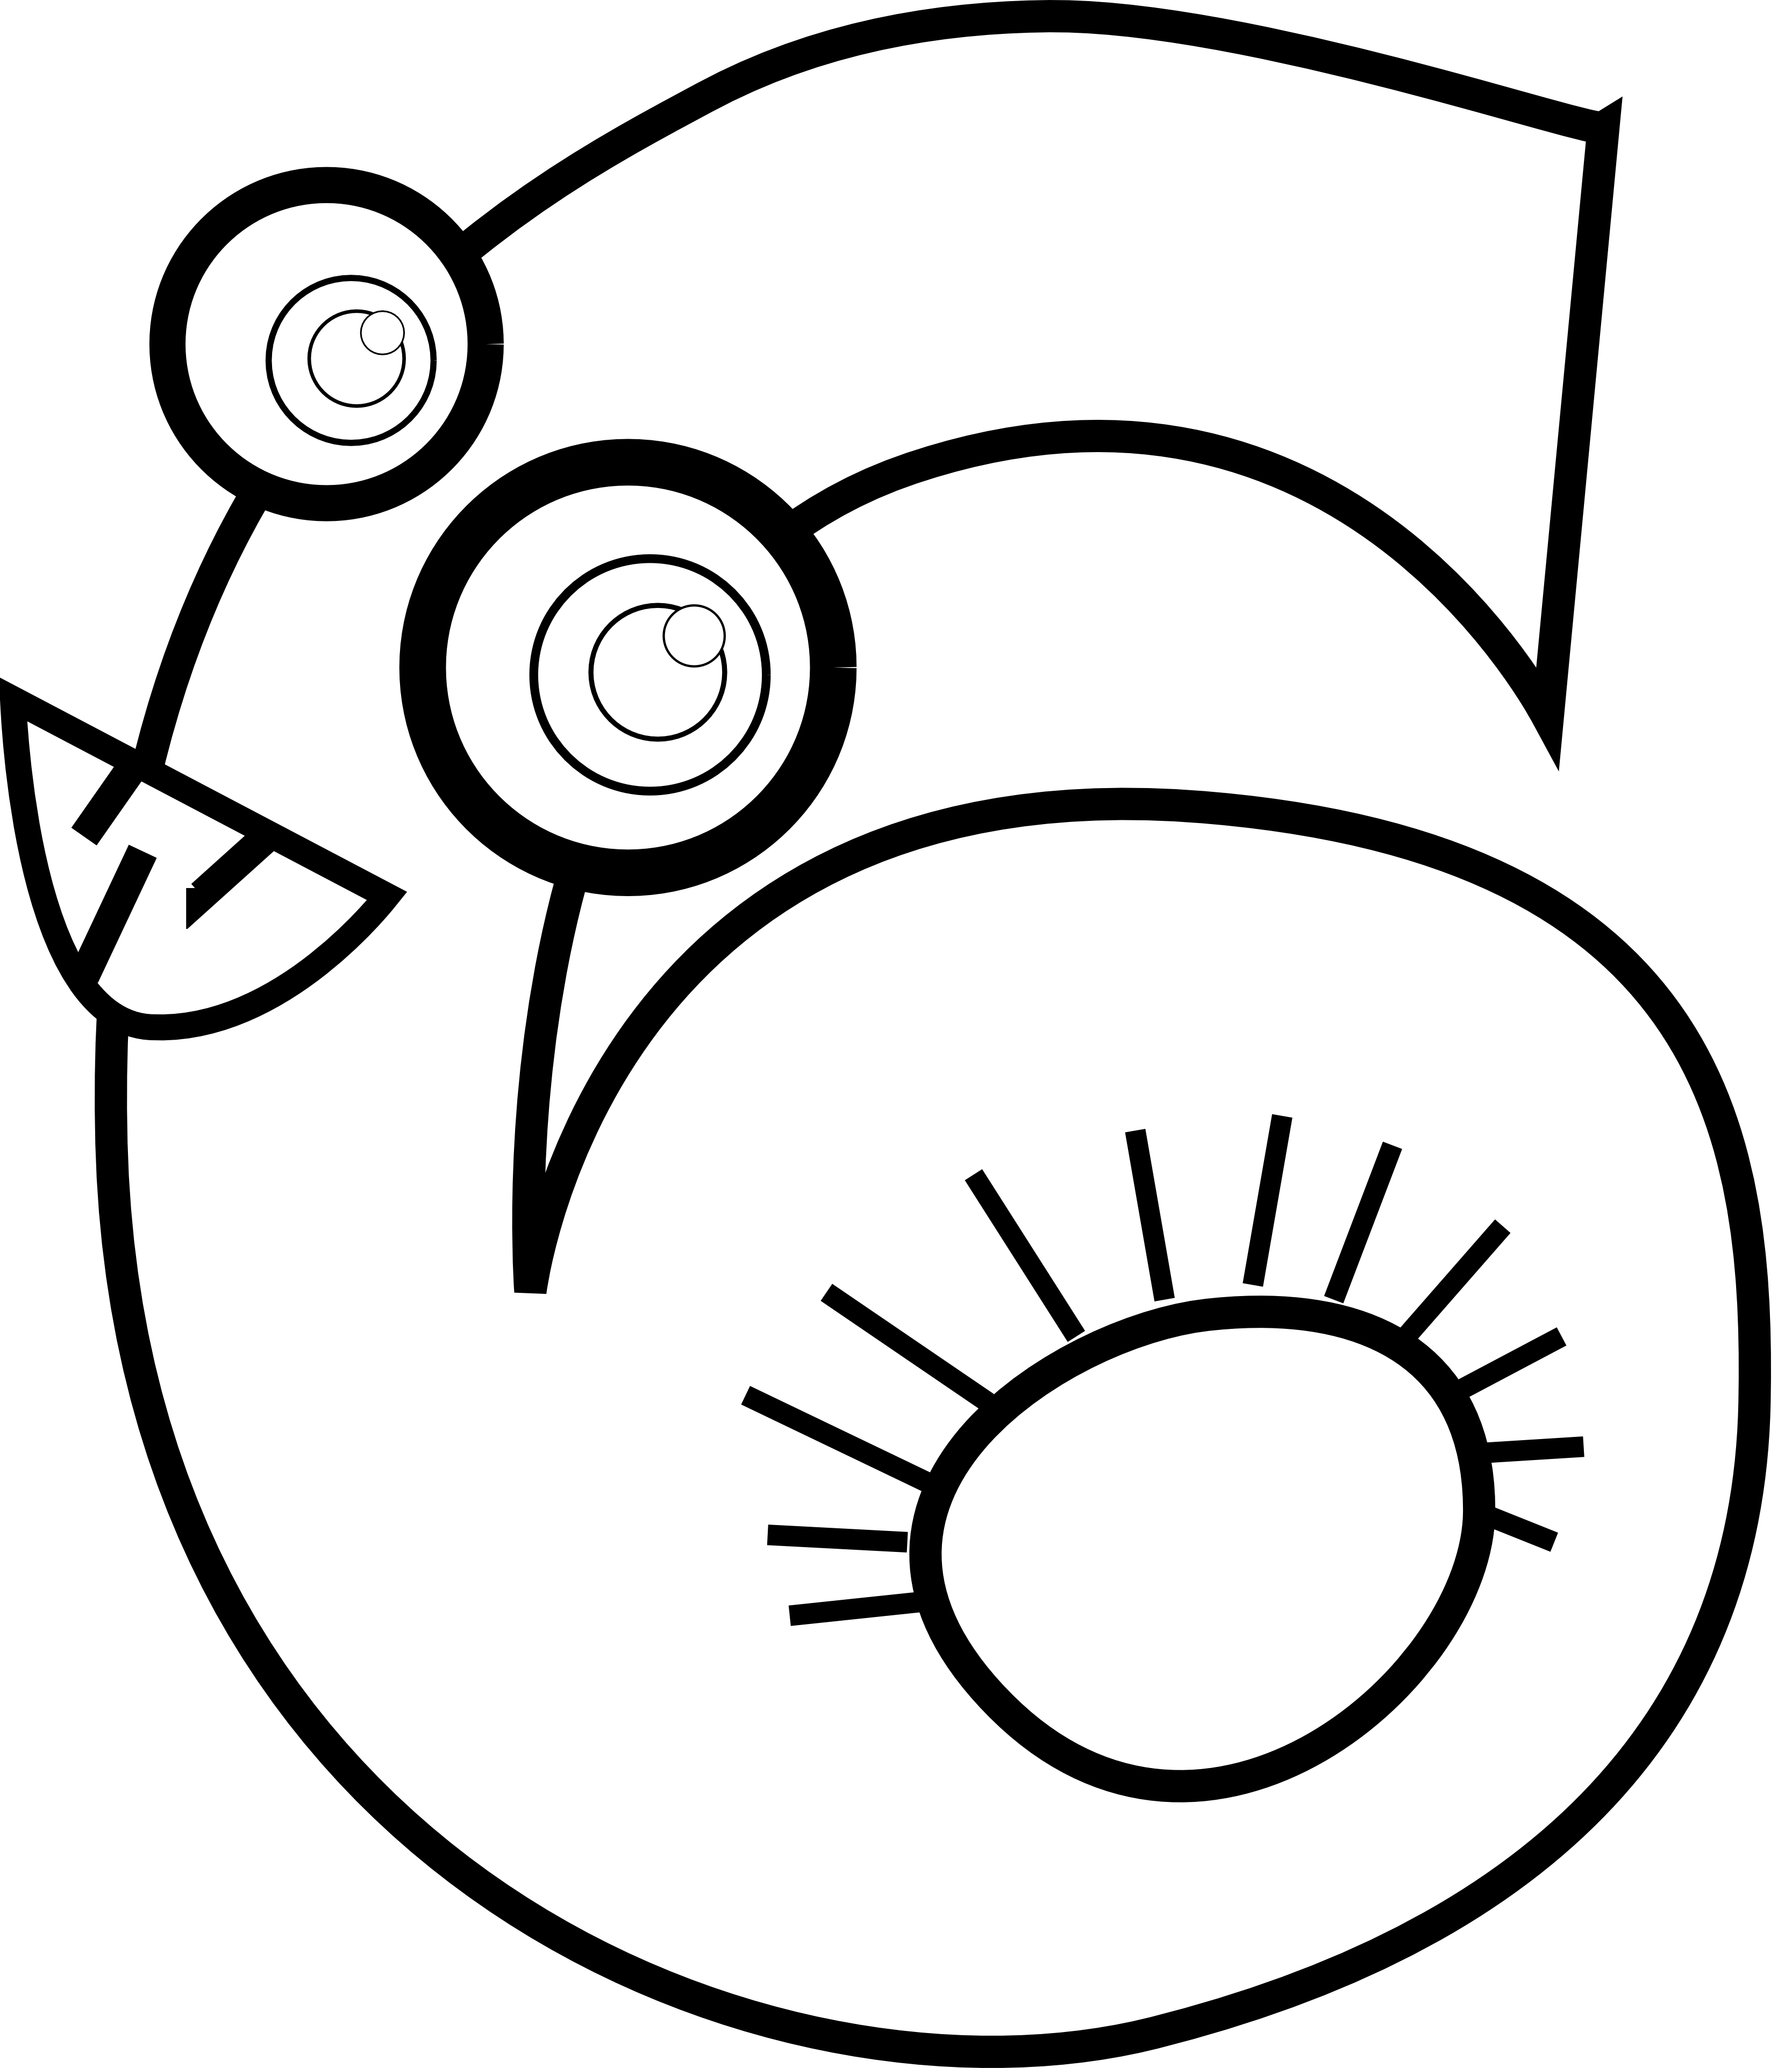 numbers clipart black and whi - Number Clipart Black And White